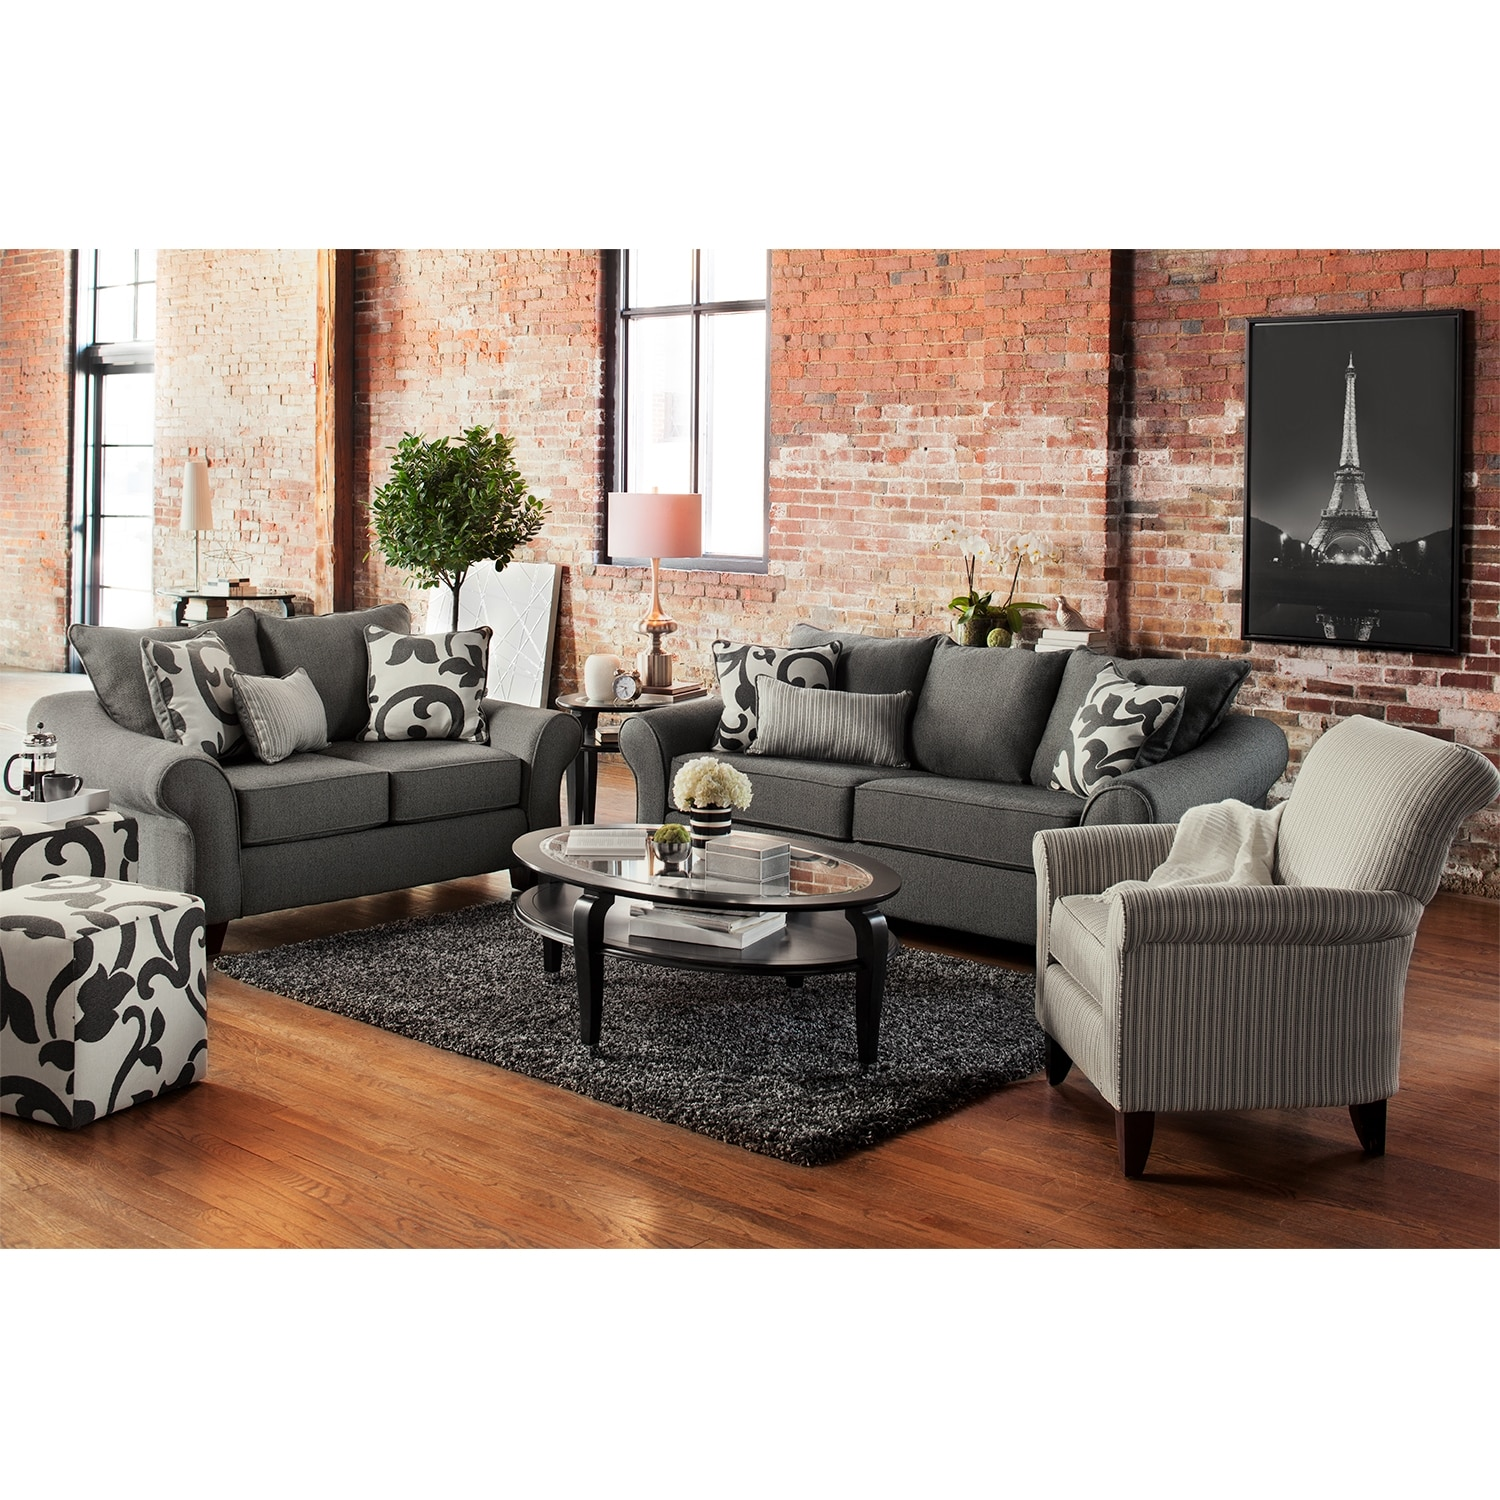 Colette gray sofa value city furniture Living room loveseats